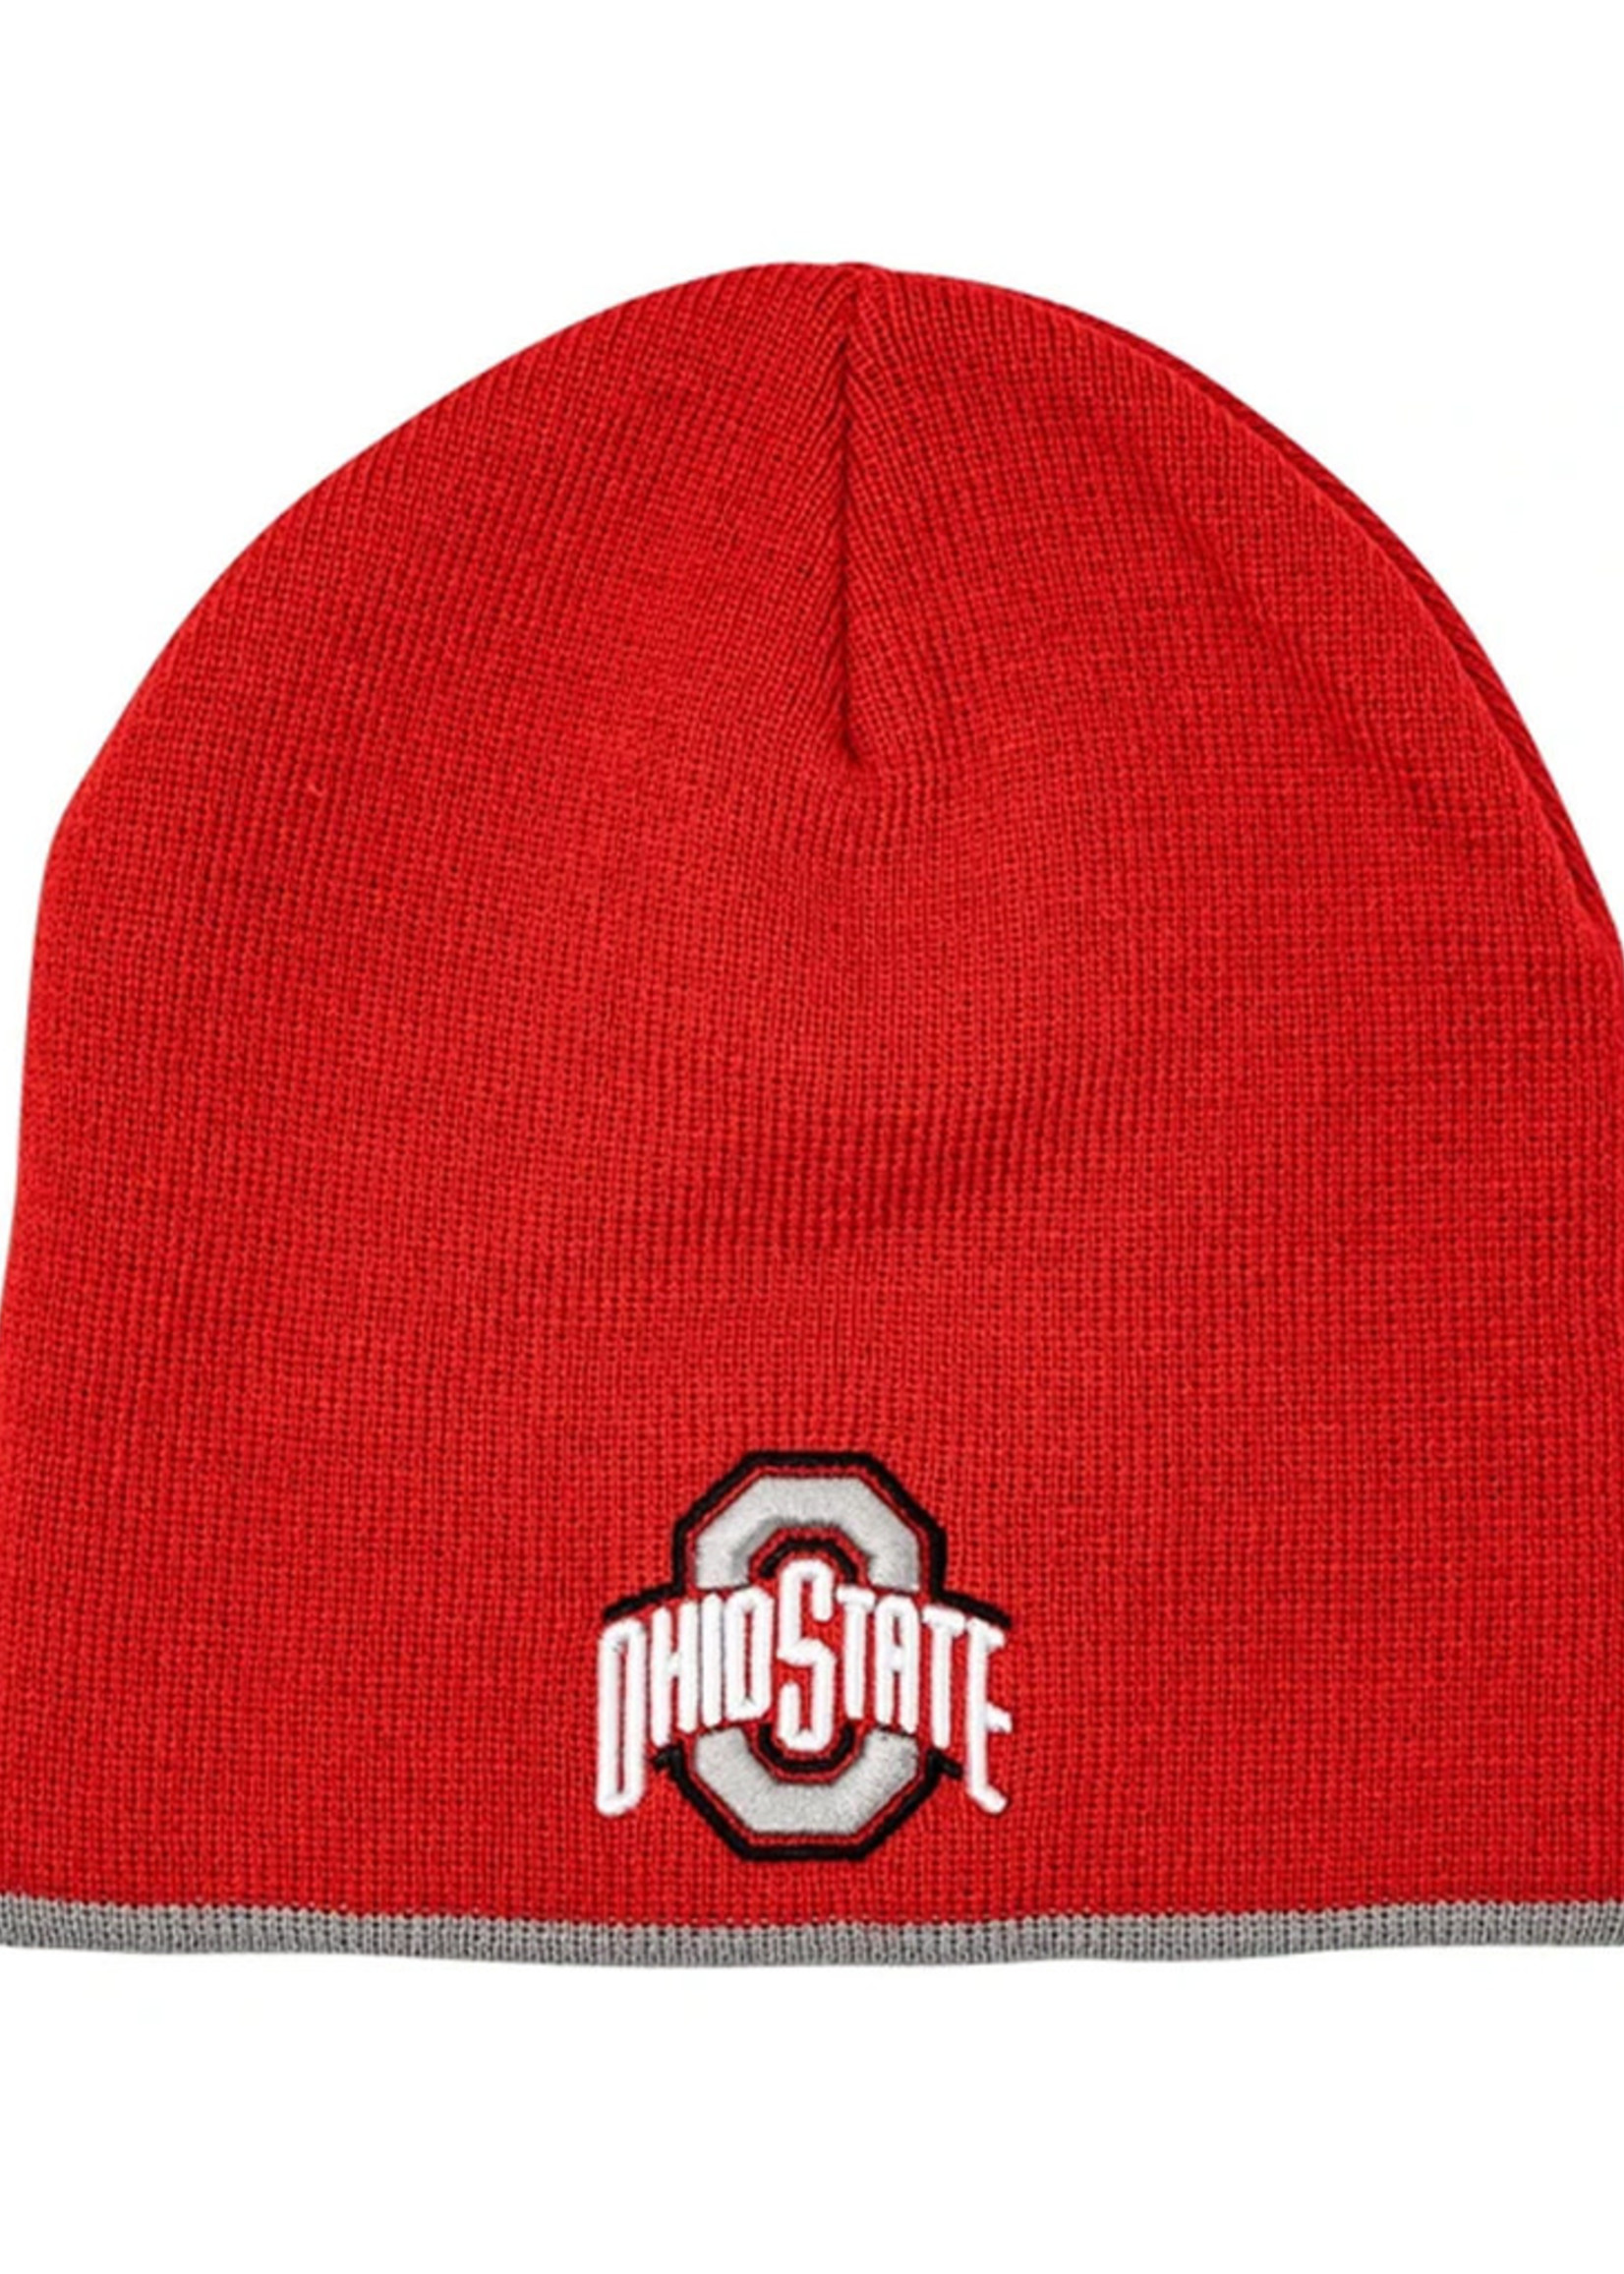 Ohio State Red Athletic O and Arch Logo Knit Hat